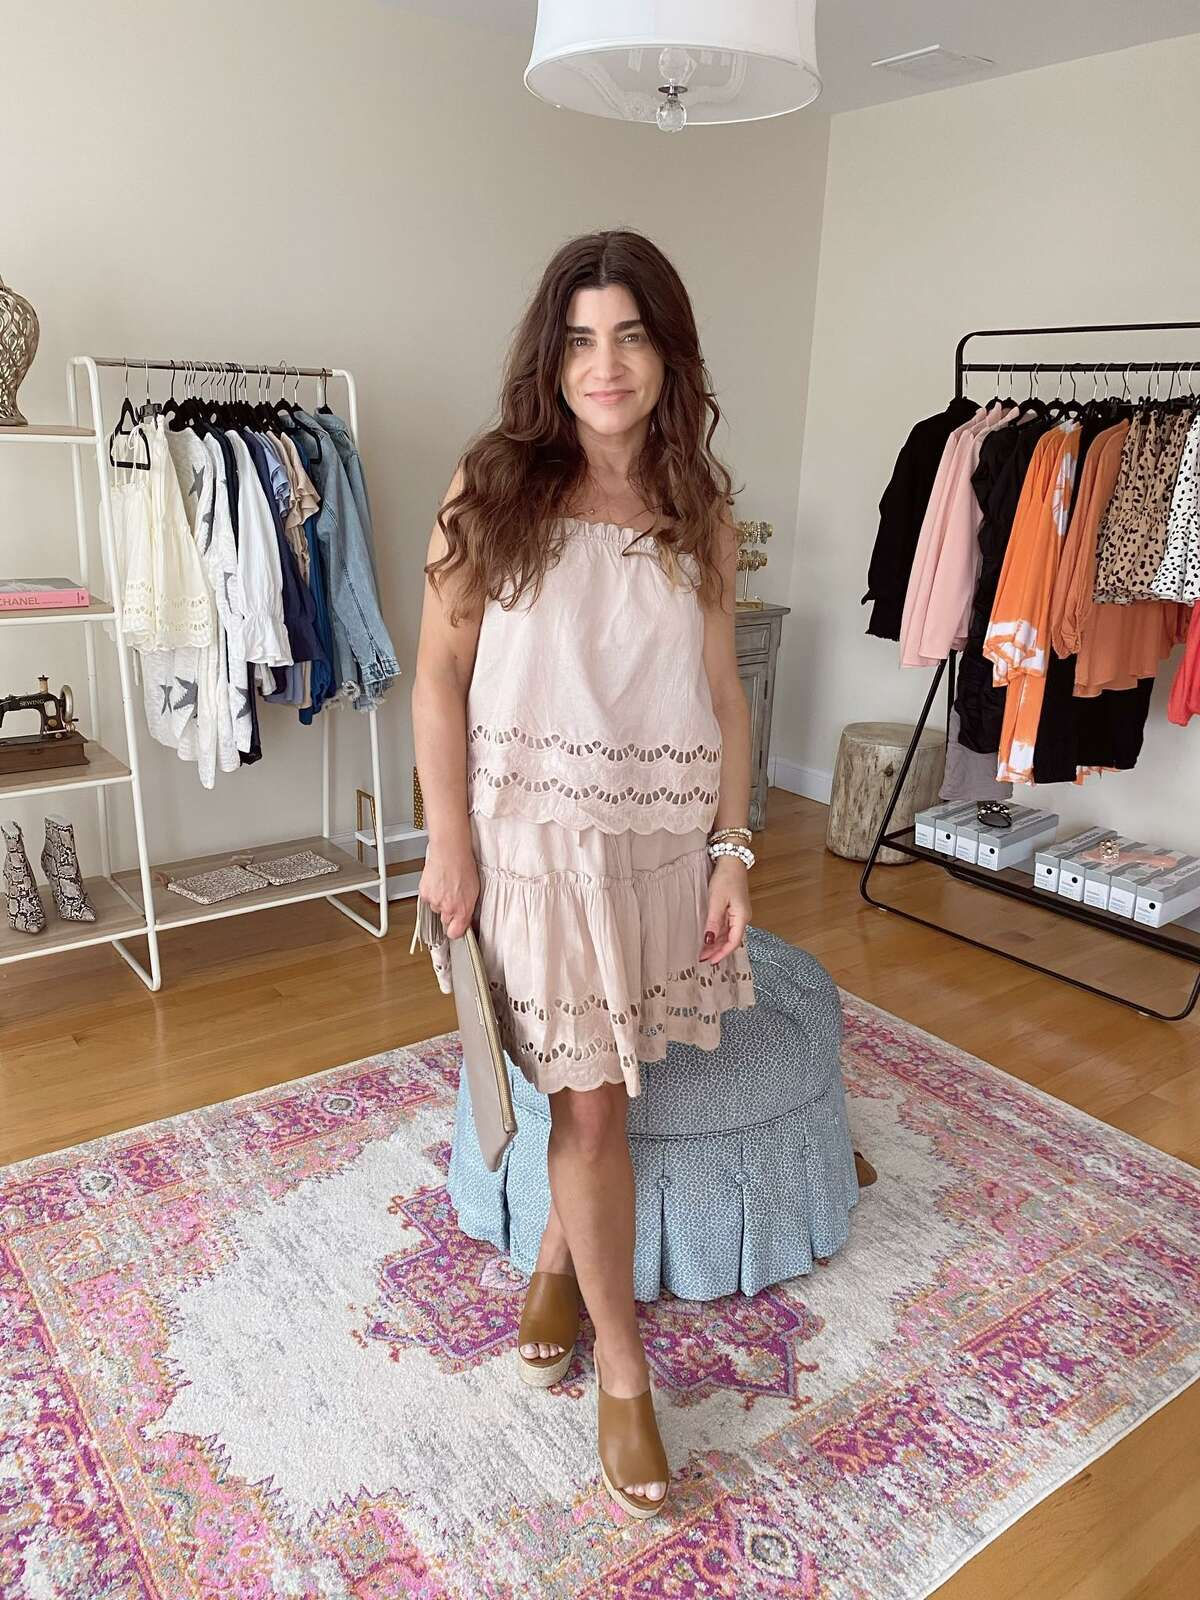 """Melissa Mallone opened her boutique, """"Plain and Fancy,"""" right before the pandemic started in March 2020. Now, she sells clothes from the store space in her home."""